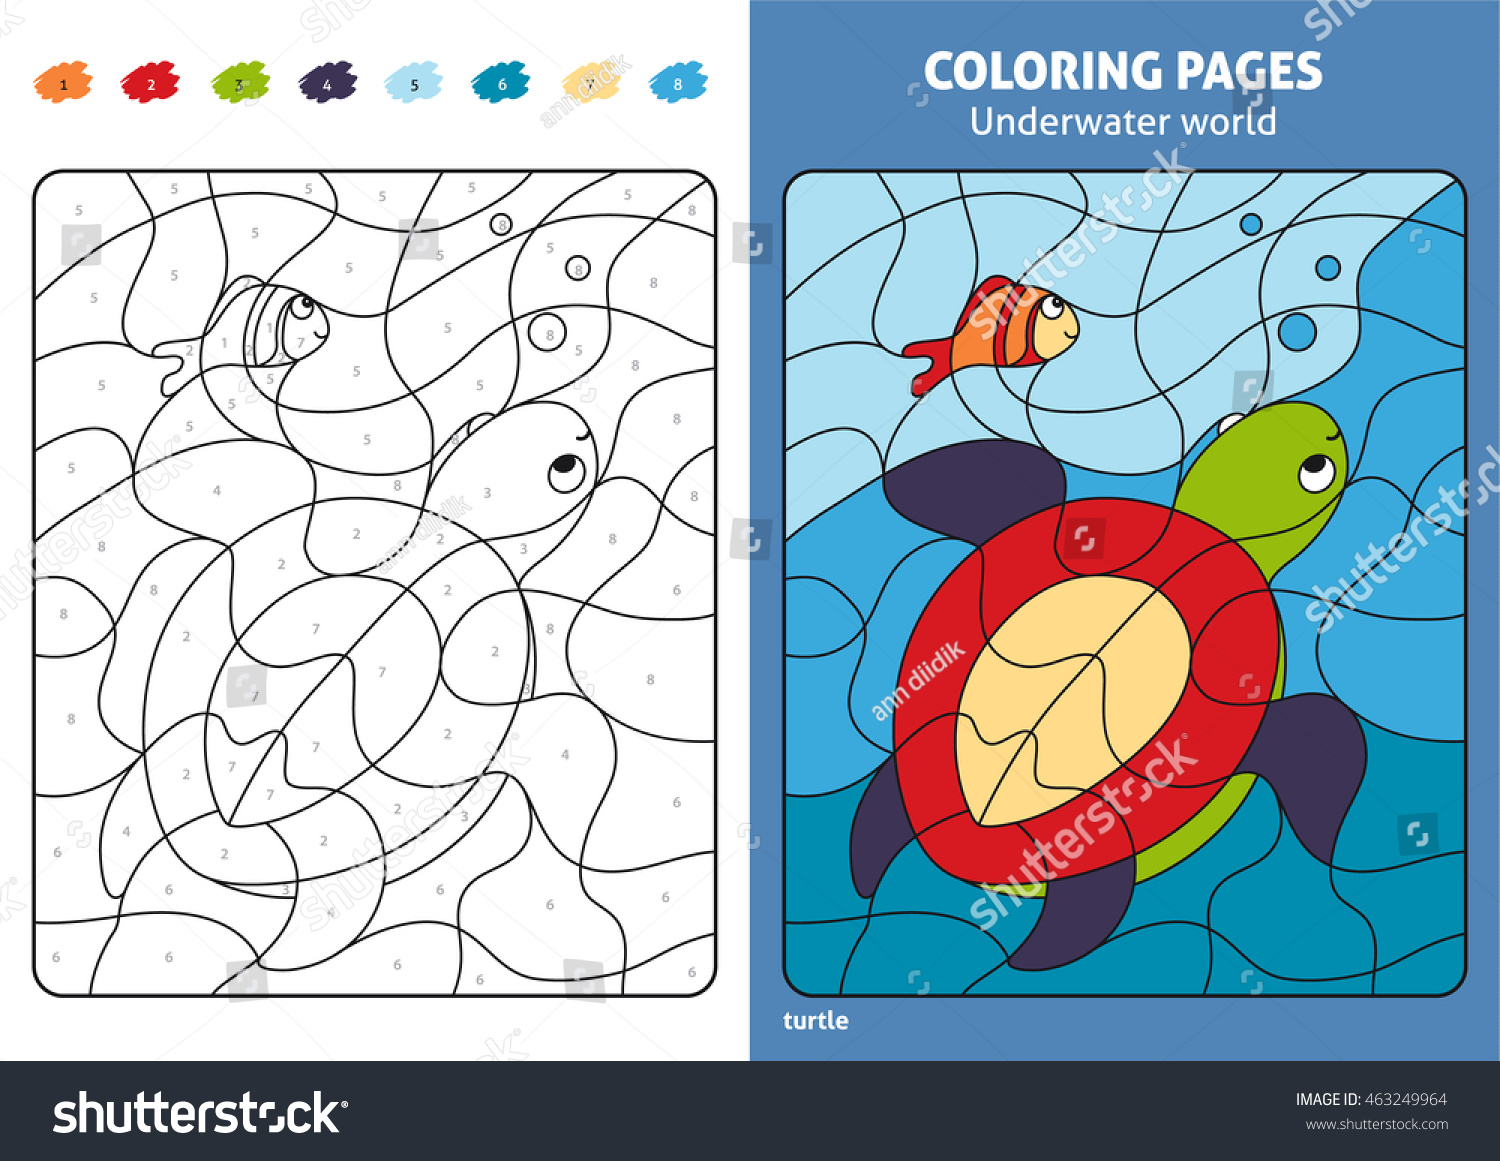 Underwater World Coloring Page Kids Turtle Stock Vector (Royalty ...